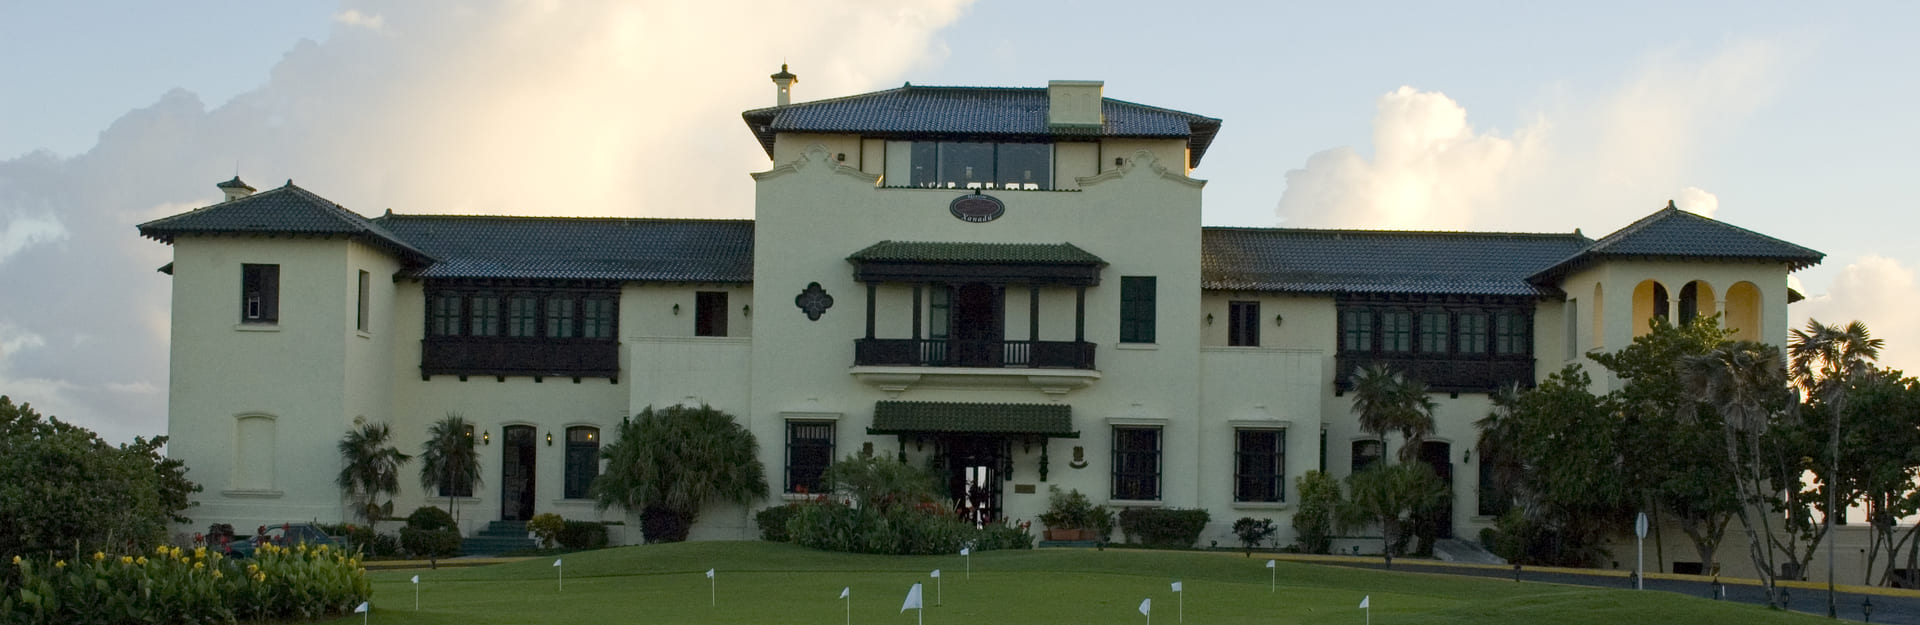 Mansion Xanadu, Golf Club House, varadero, Cuba